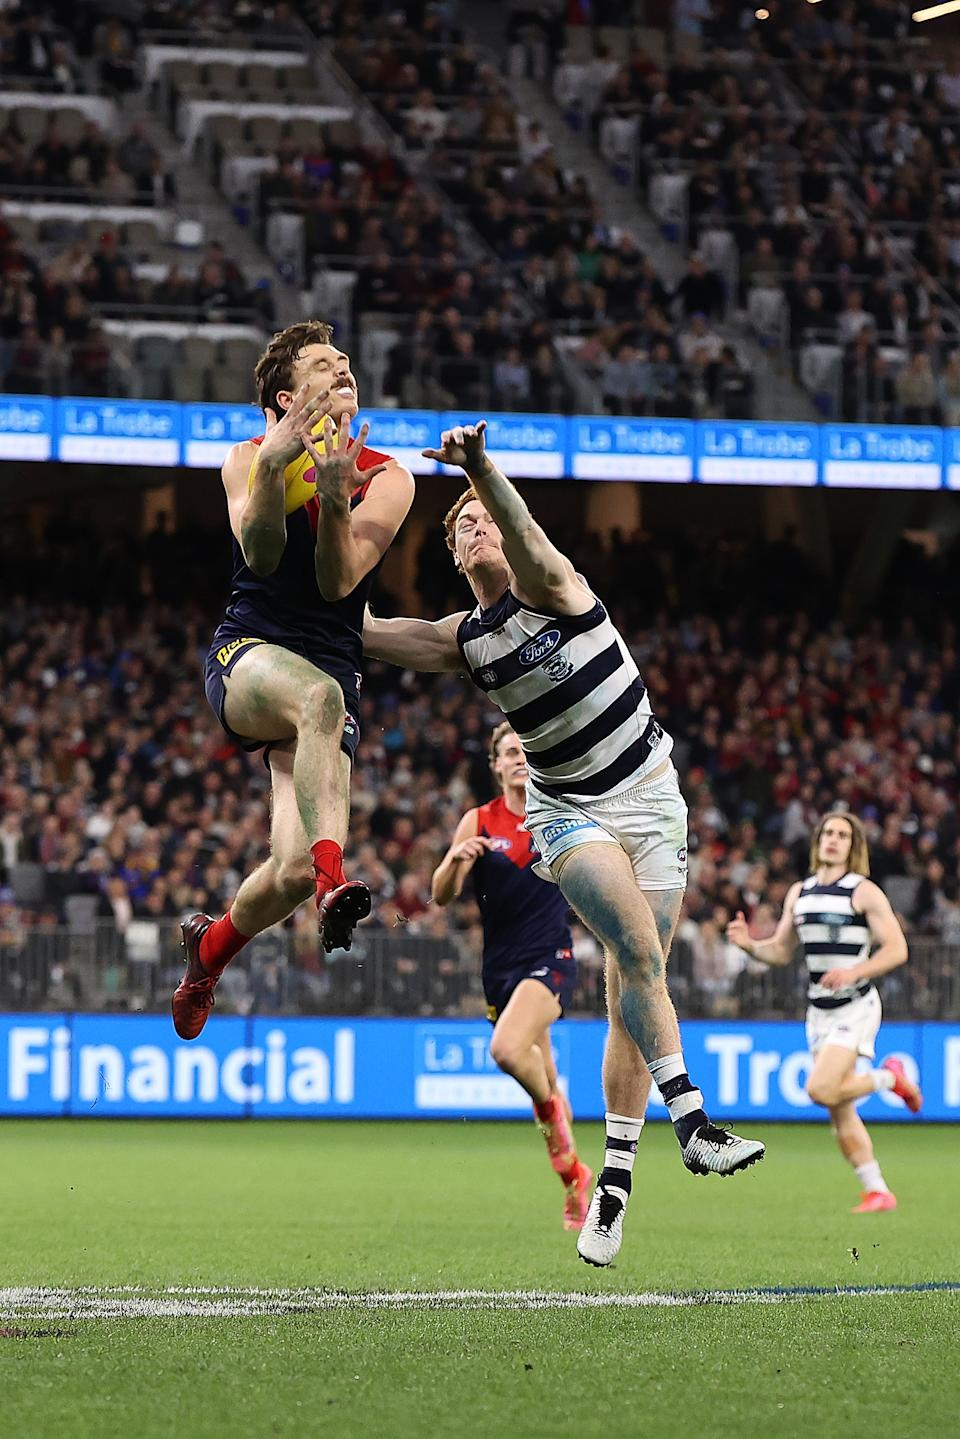 Jake Lever marks the ball against Gary Rohan of the Cats during the AFL First Preliminary Final match.